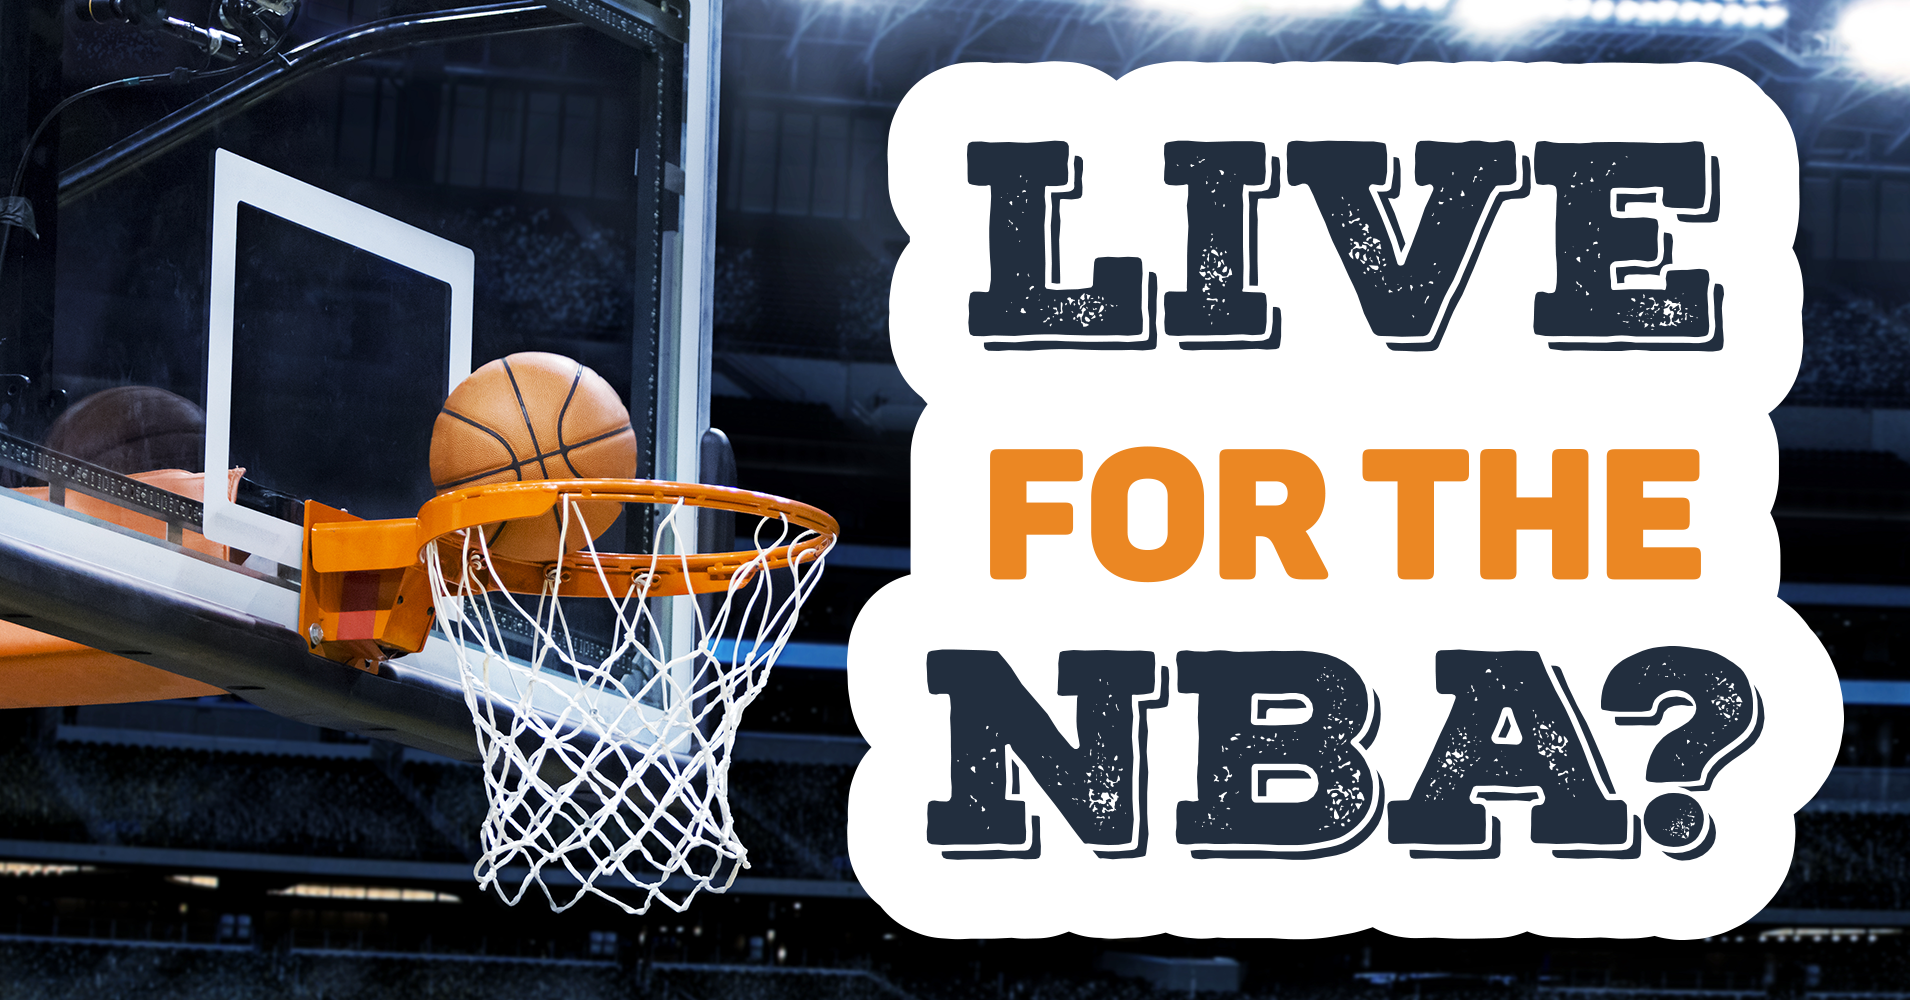 The ultimate nba trivia quiz question 18 shaquille o neal has won four nba championships three times with the la lakers and one time with _____